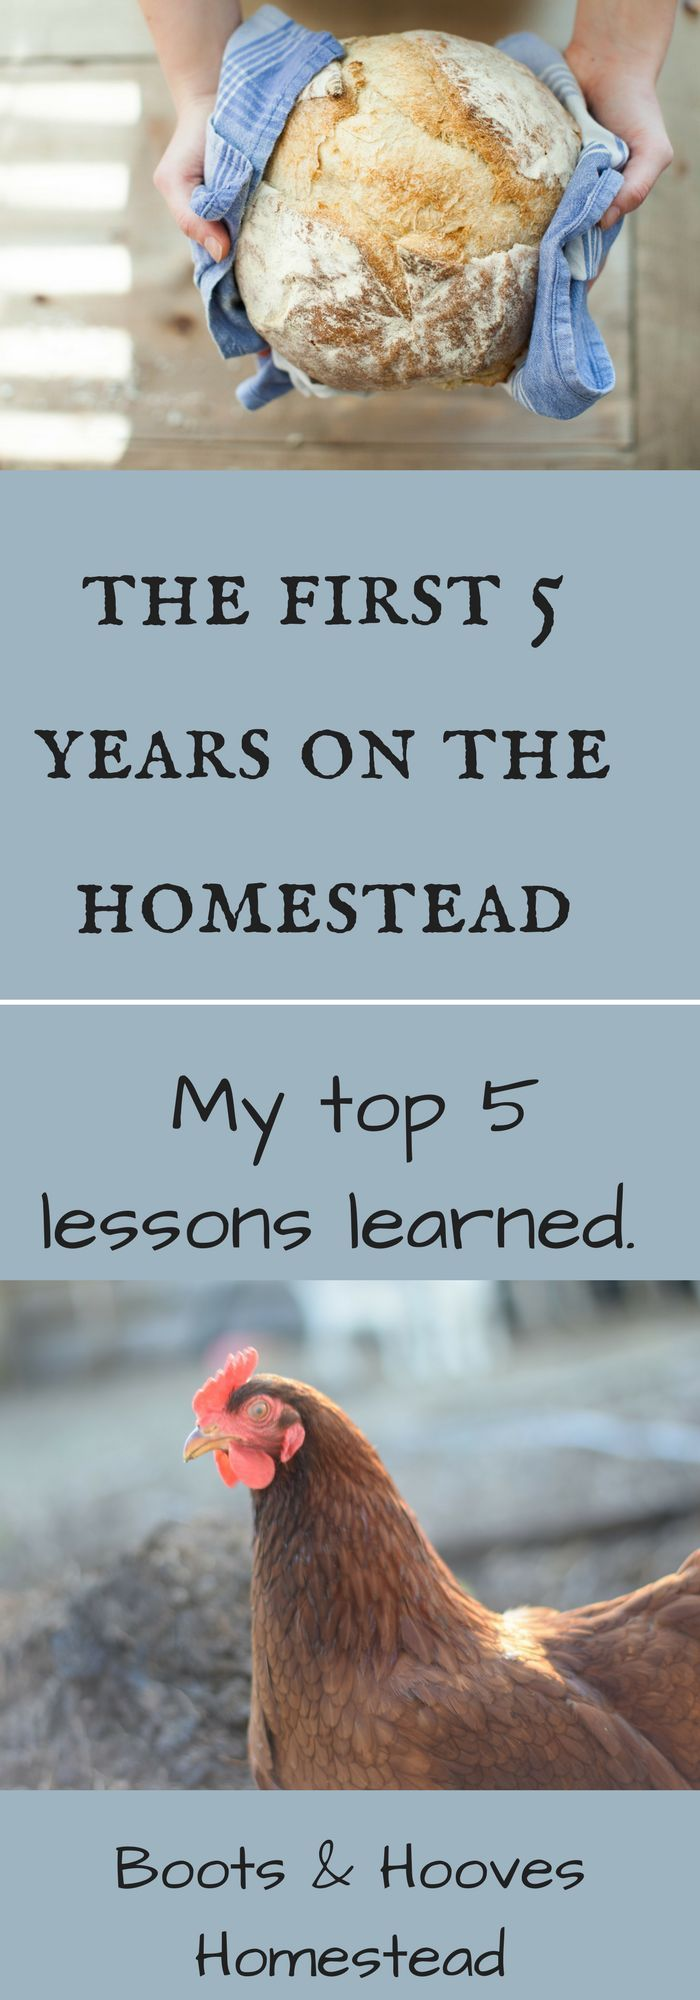 My Top Five Homesteading Lessons - Boots & Hooves Homestead